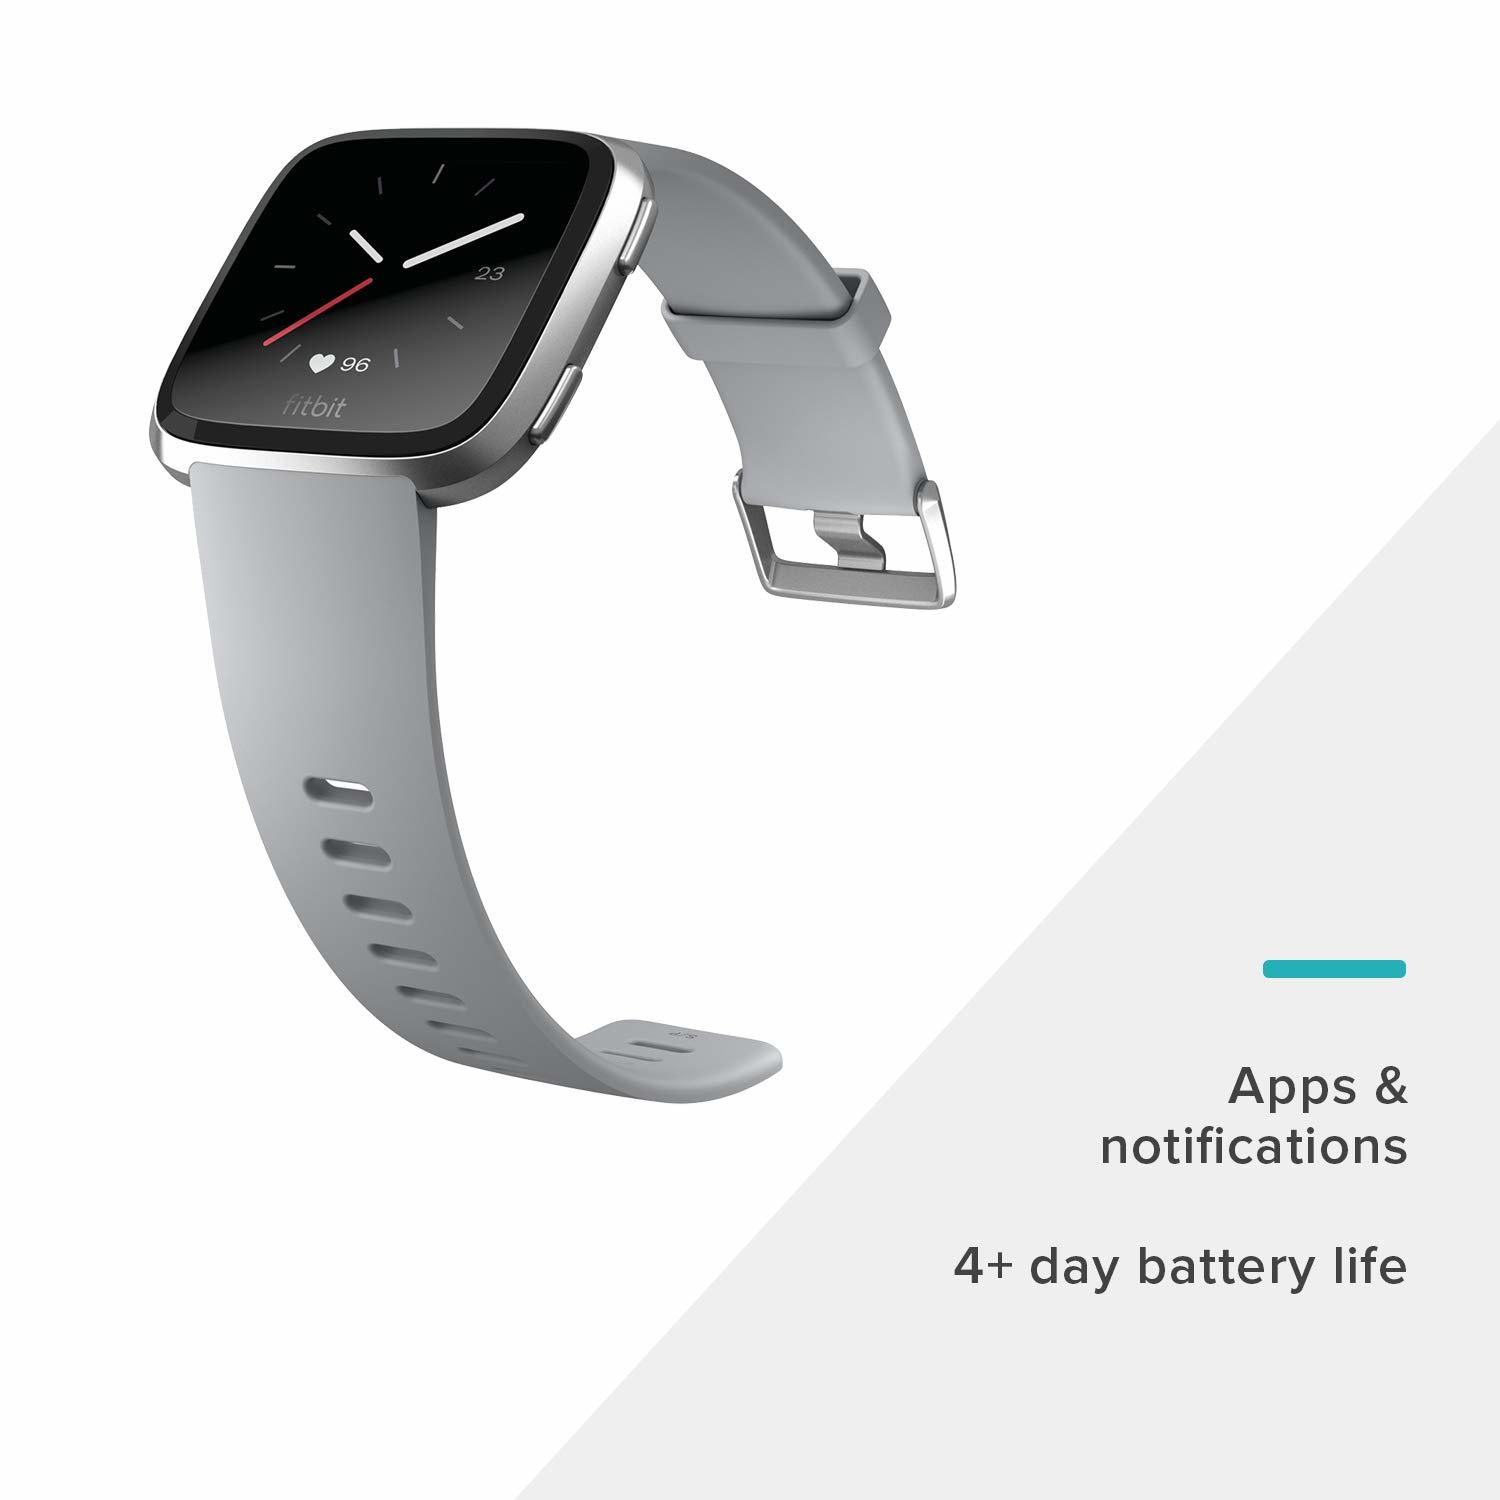 Fitbit Versa Health and Fitness Smartwatch image